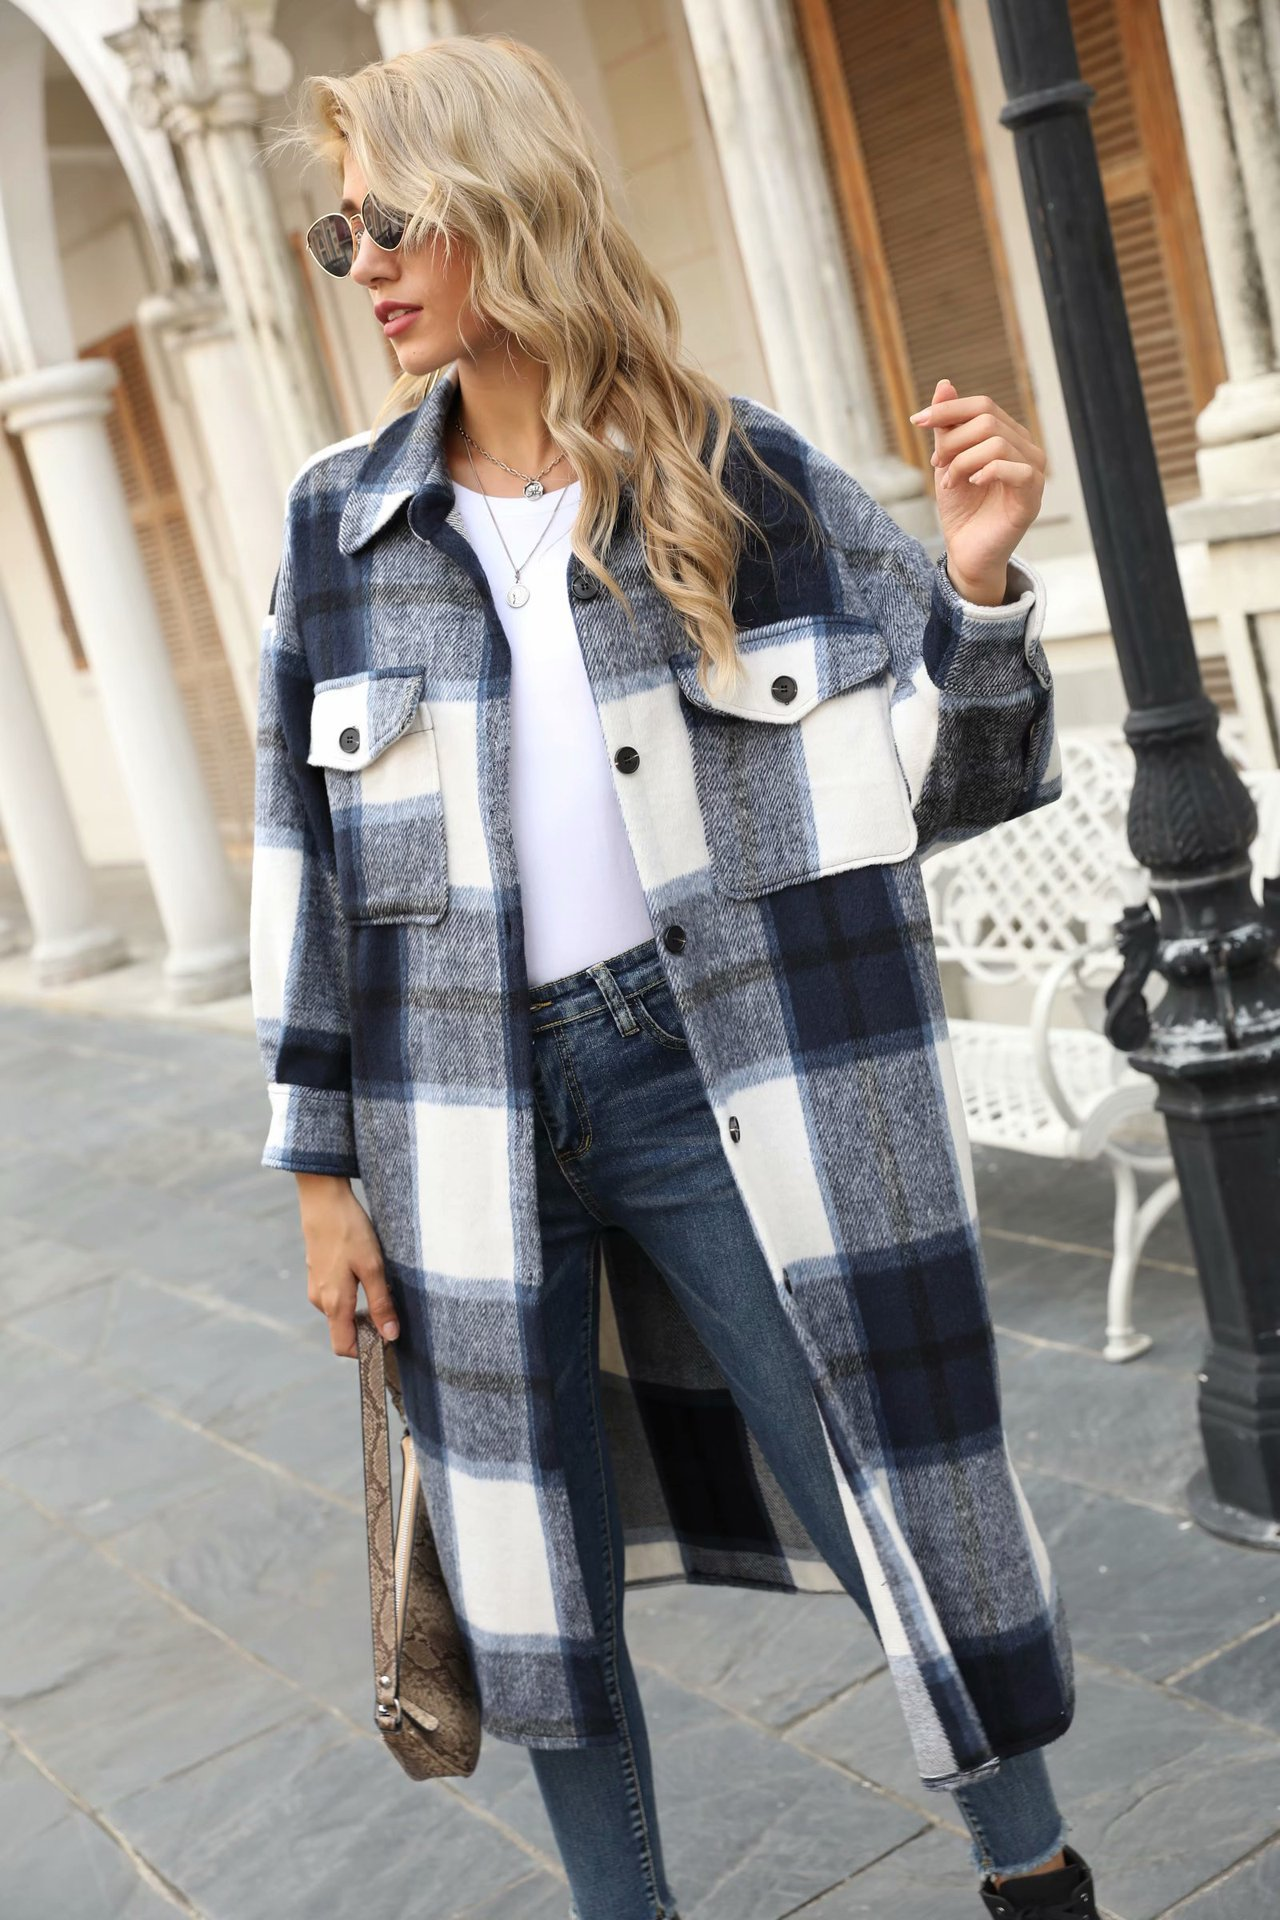 NewArrivals Winter Checked Women Jacket Overcoat Warm Plaid Long Coat Thick Woolen Blends Female  St